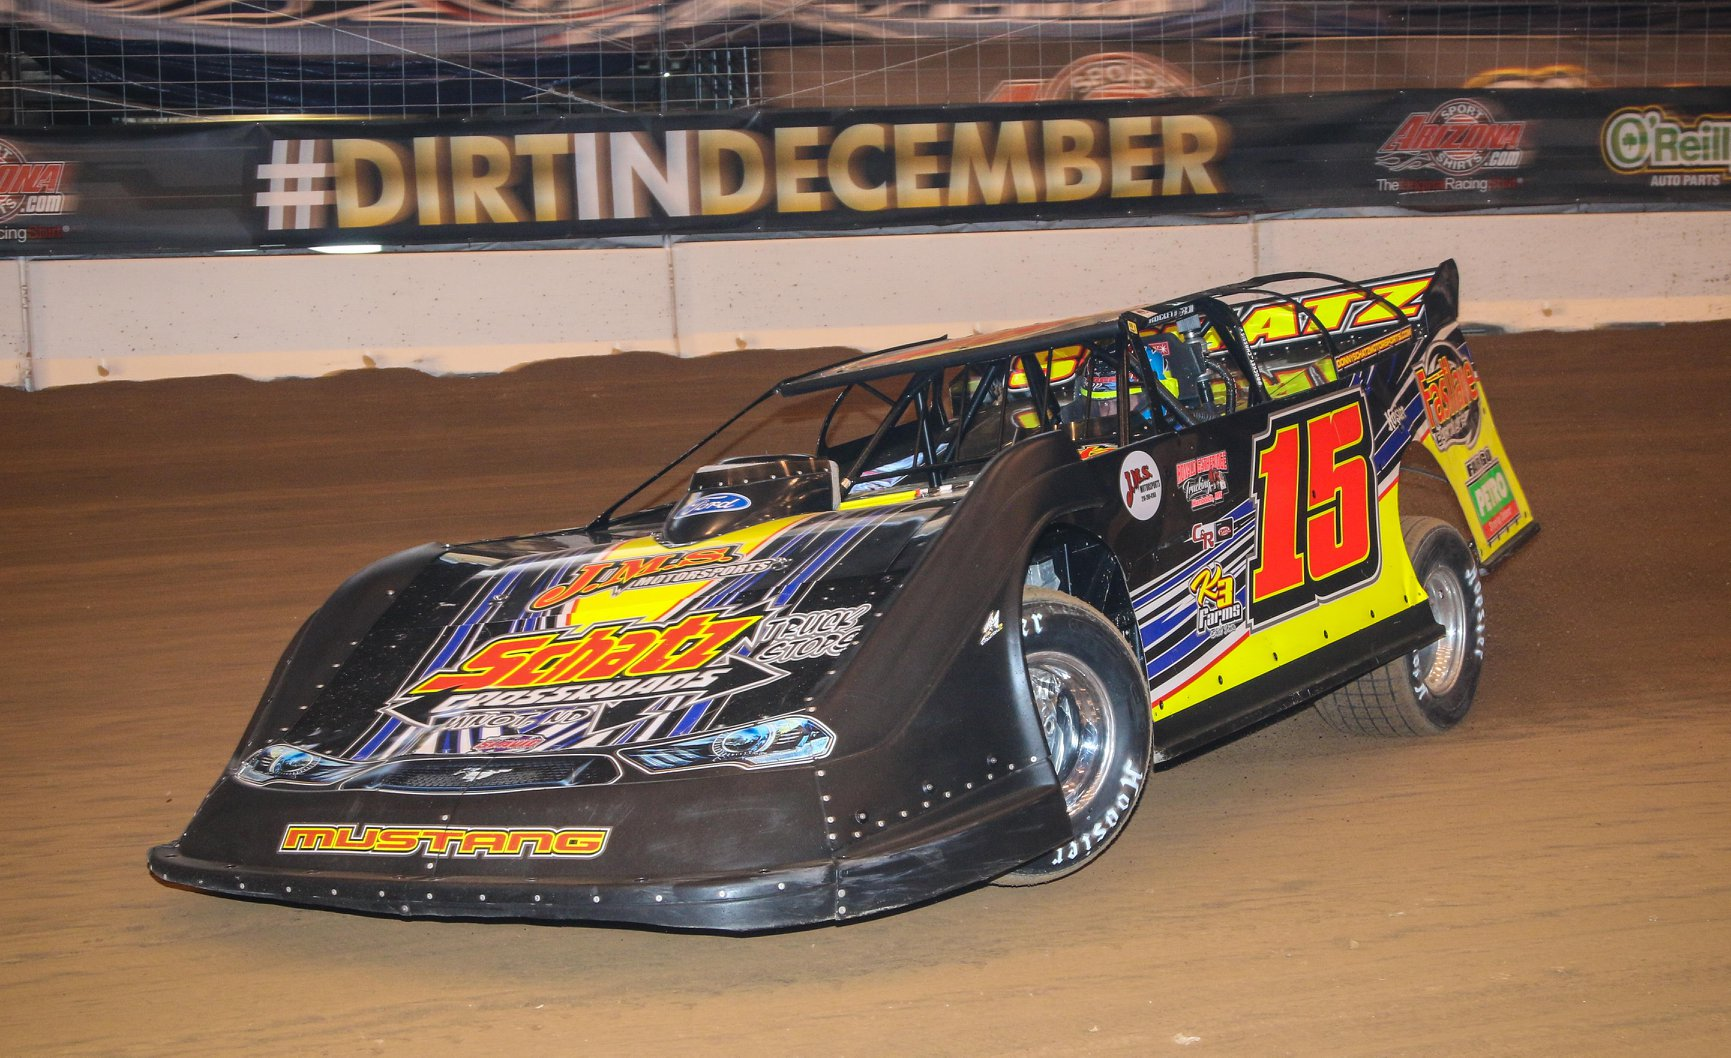 Donny Schatz, Donny Schatz Motorsports, Brandon Sheppard, Gateway Dirt Nationals, Speedway Shots, Late Model, Dirt Late Model, World of Outlaws